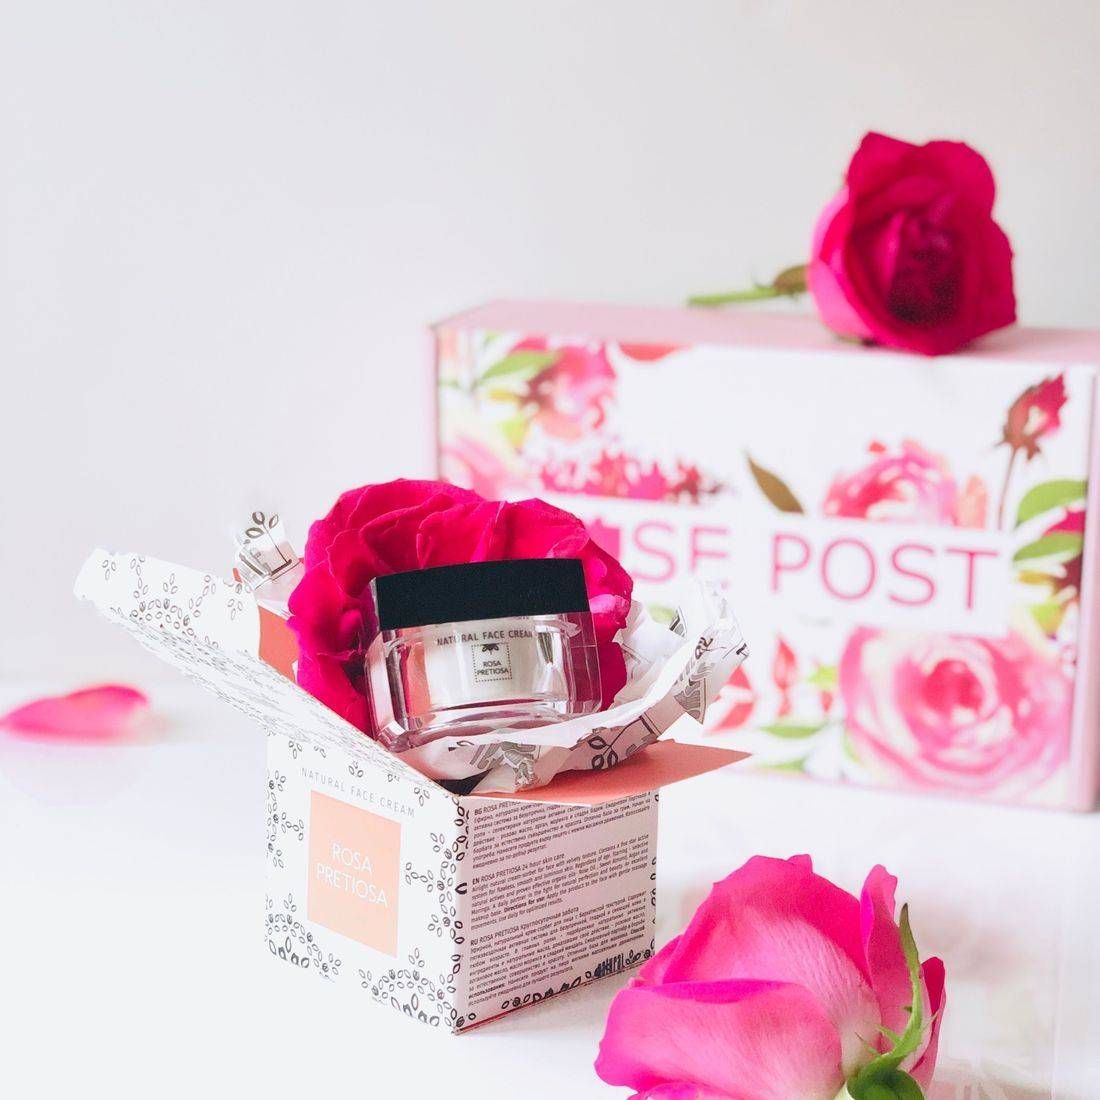 eco beauty box, rosa pretiosa natural face cream, rose water, organic rose cream, rosepostbox, natural cosmetic, clean beauty, rose moisturizer